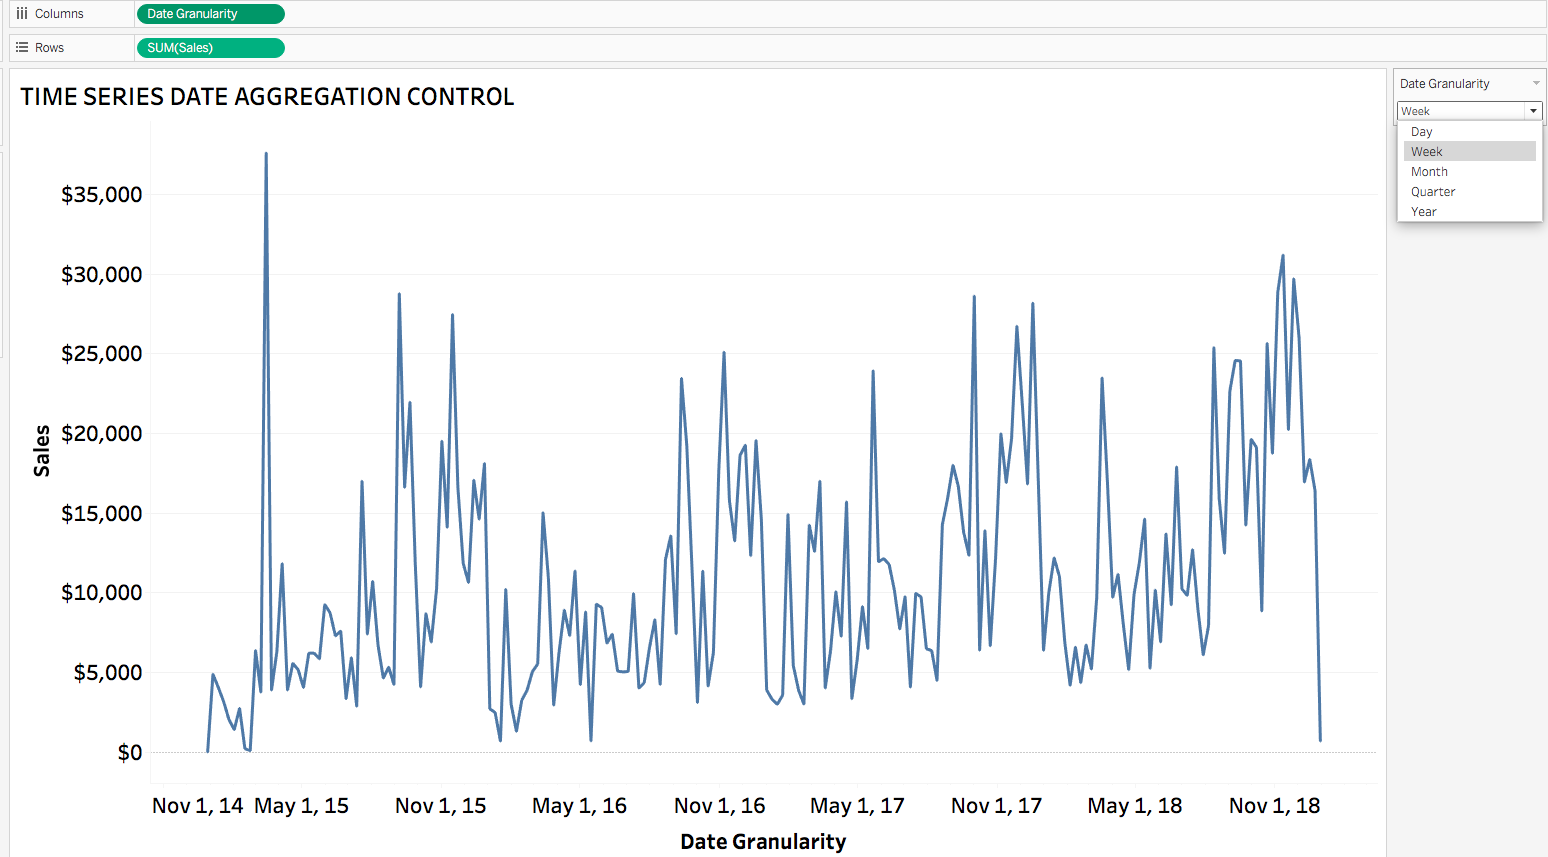 Time series date aggregation control Tableau